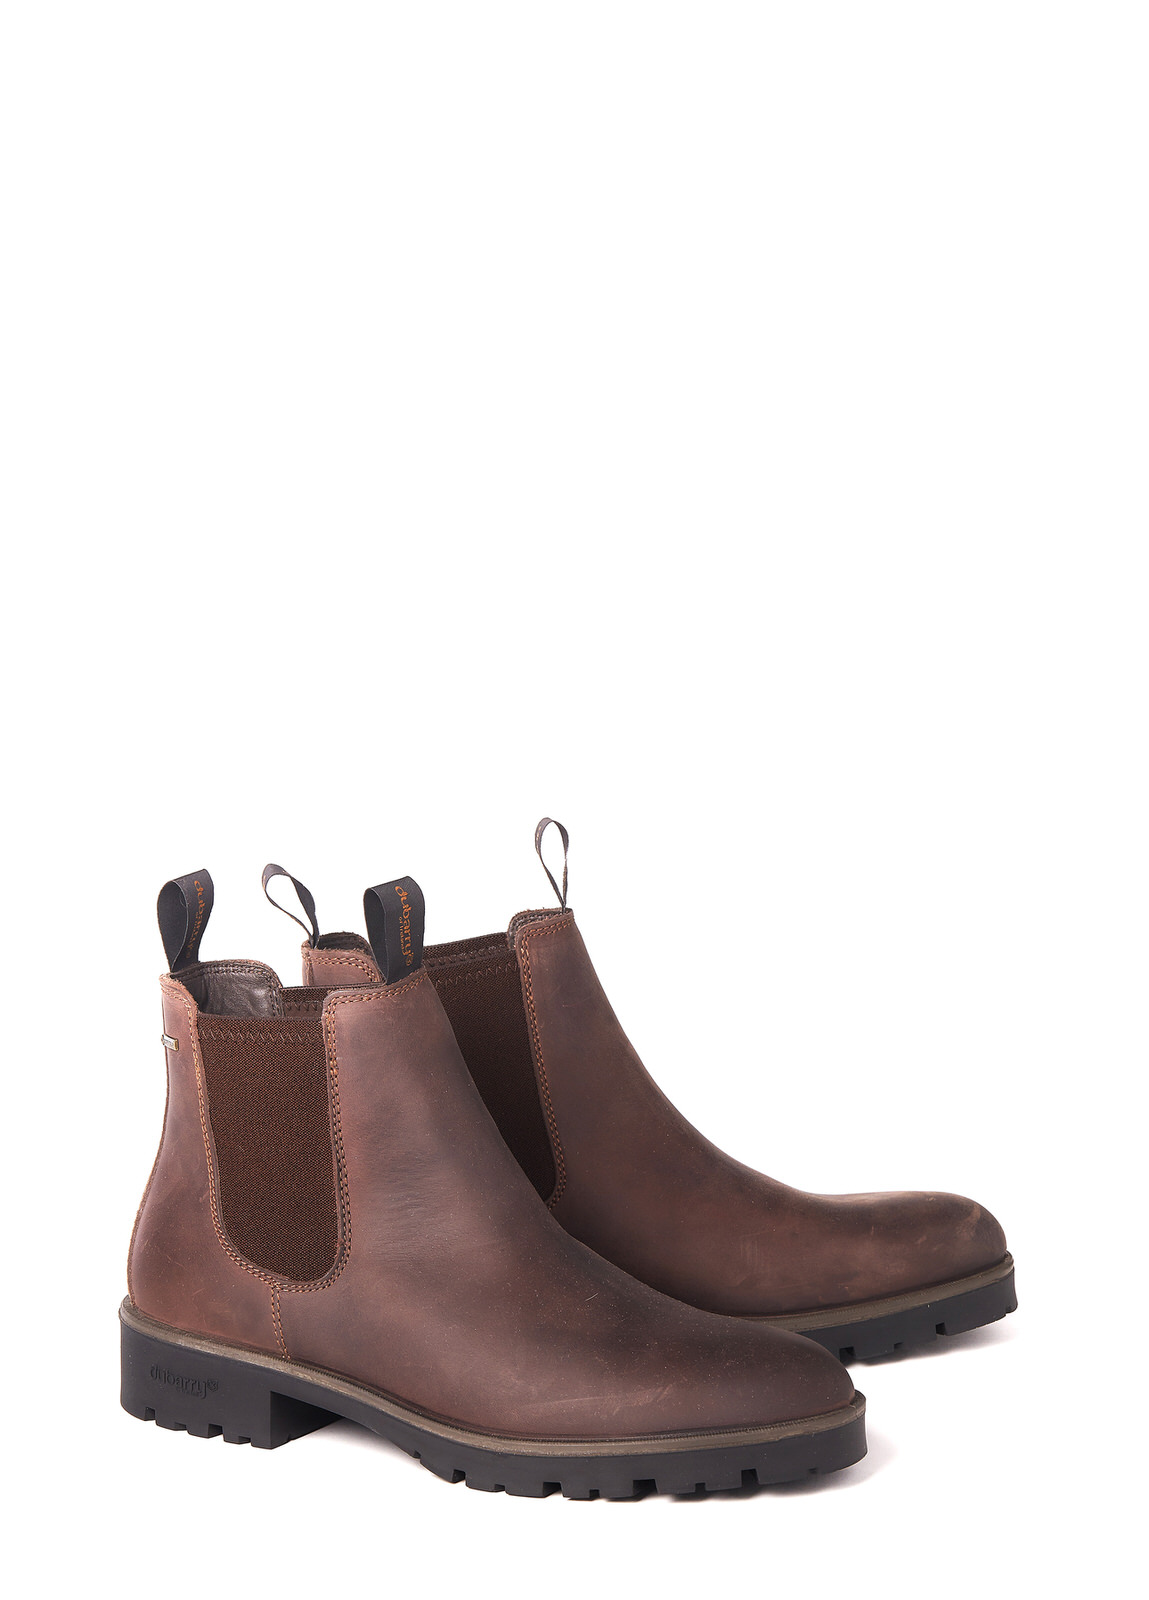 Antrim Country Boot - Old Rum